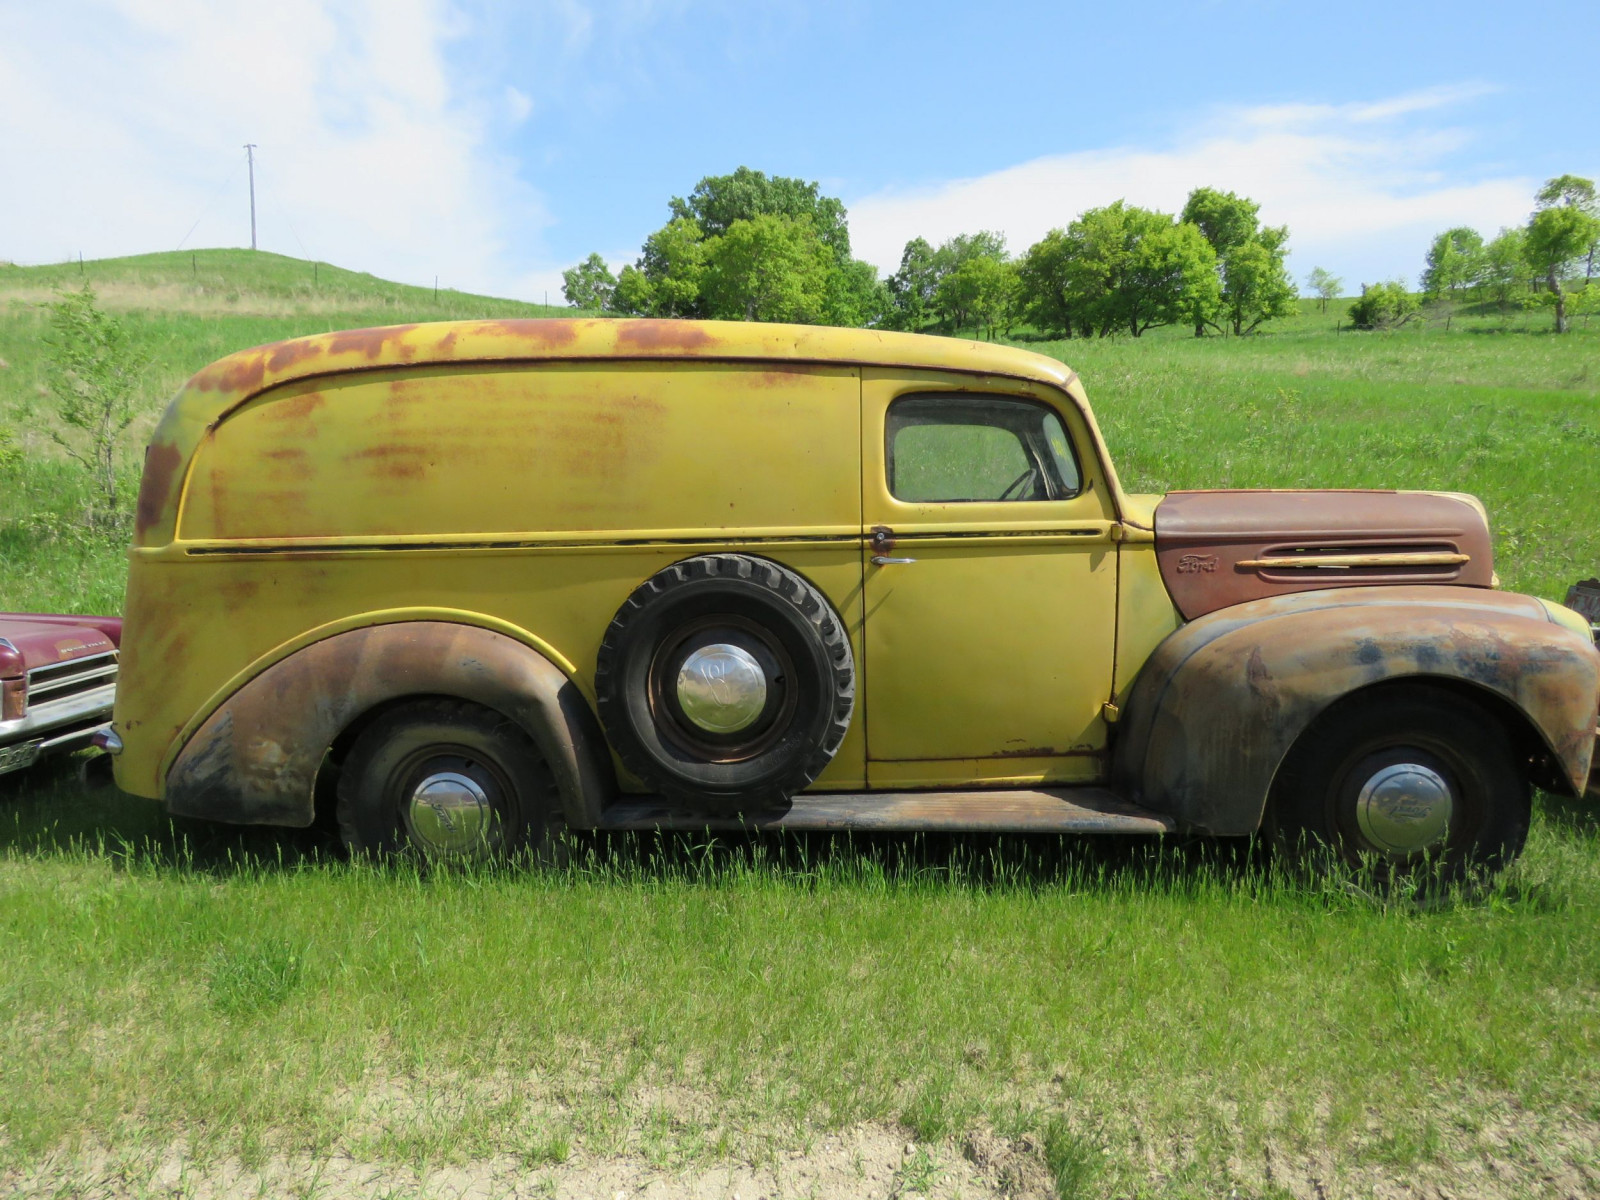 1941 Ford Panel Truck - Image 3